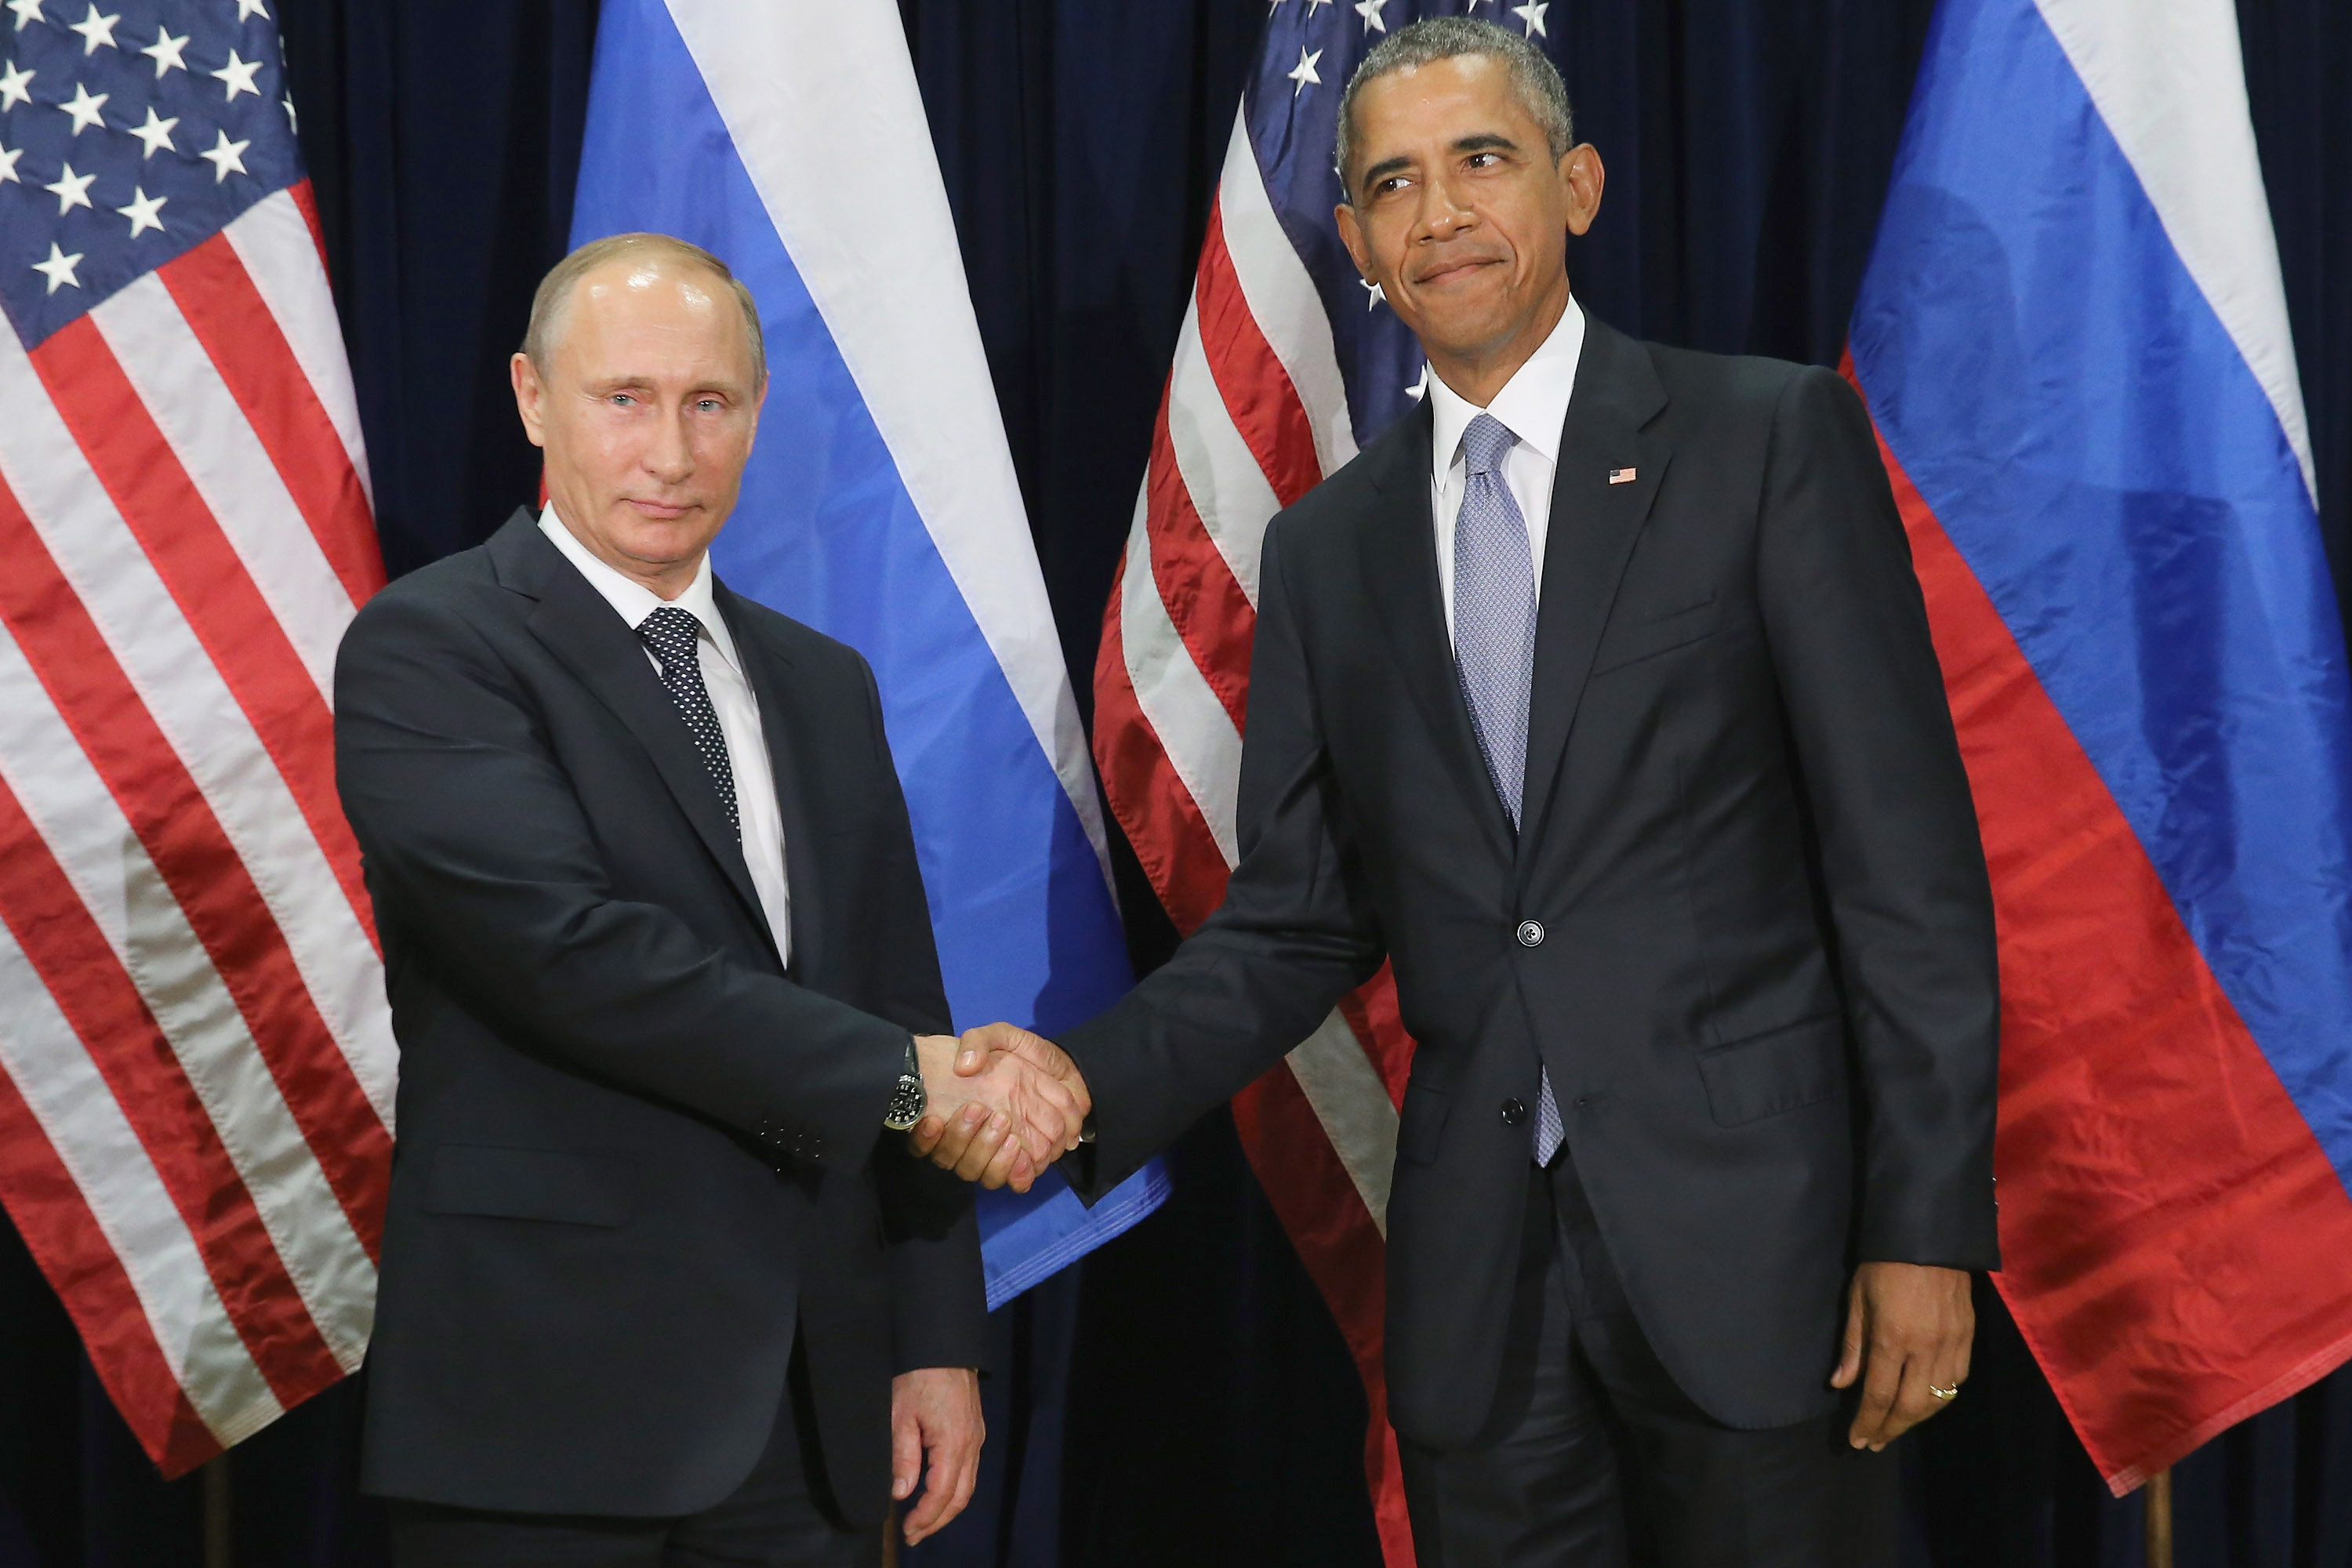 Obama Holds Bilateral Meeting With Russian President Putin At UN